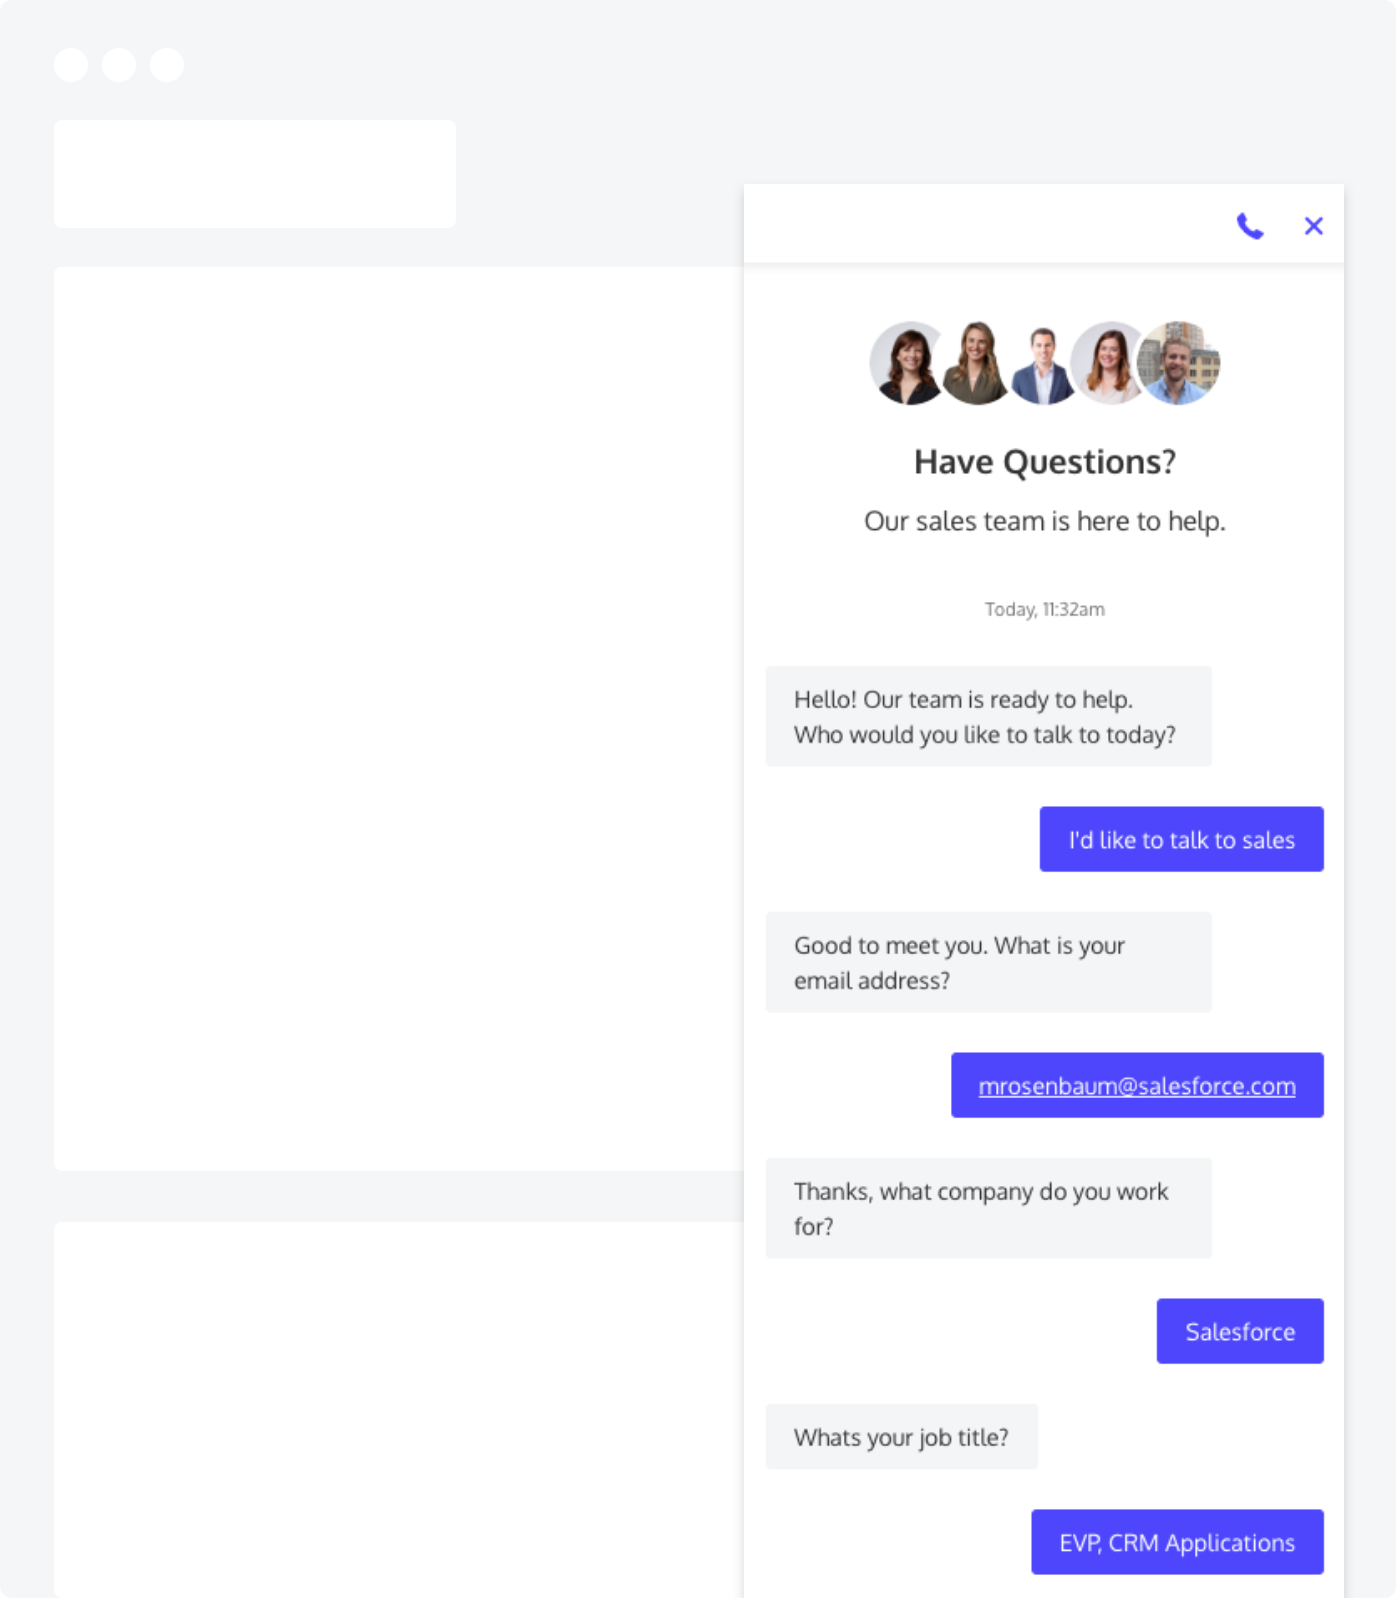 A chat bot collecting data and populating Lead Fields on a website